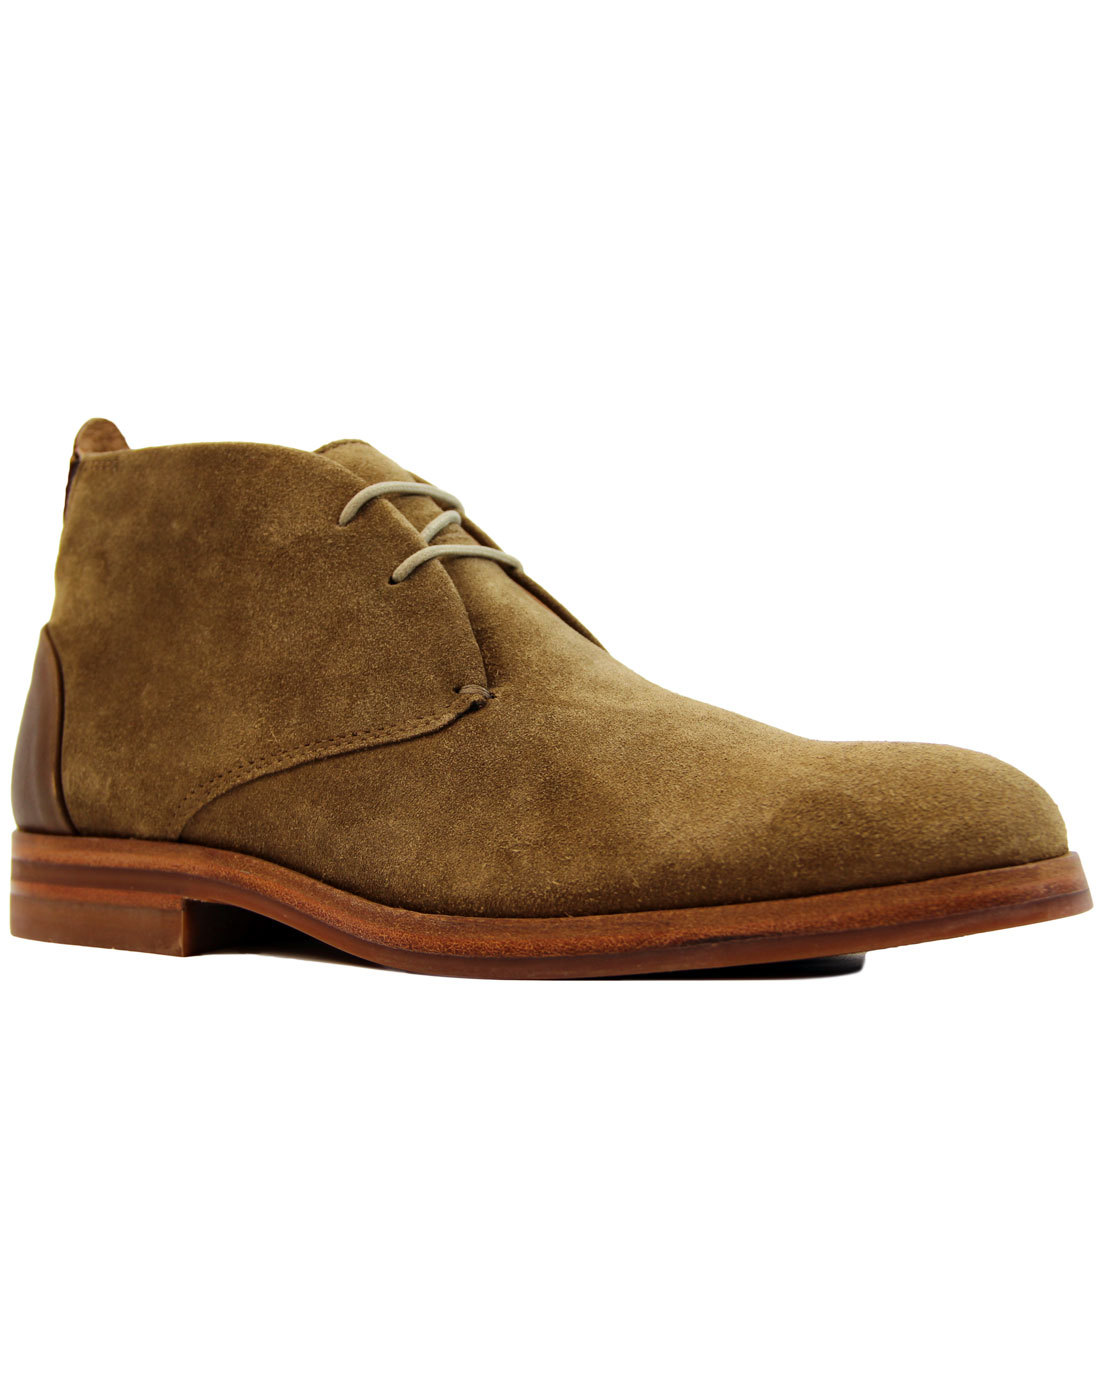 Matteo H by HUDSON Mod Tobacco Suede Chukka Boots